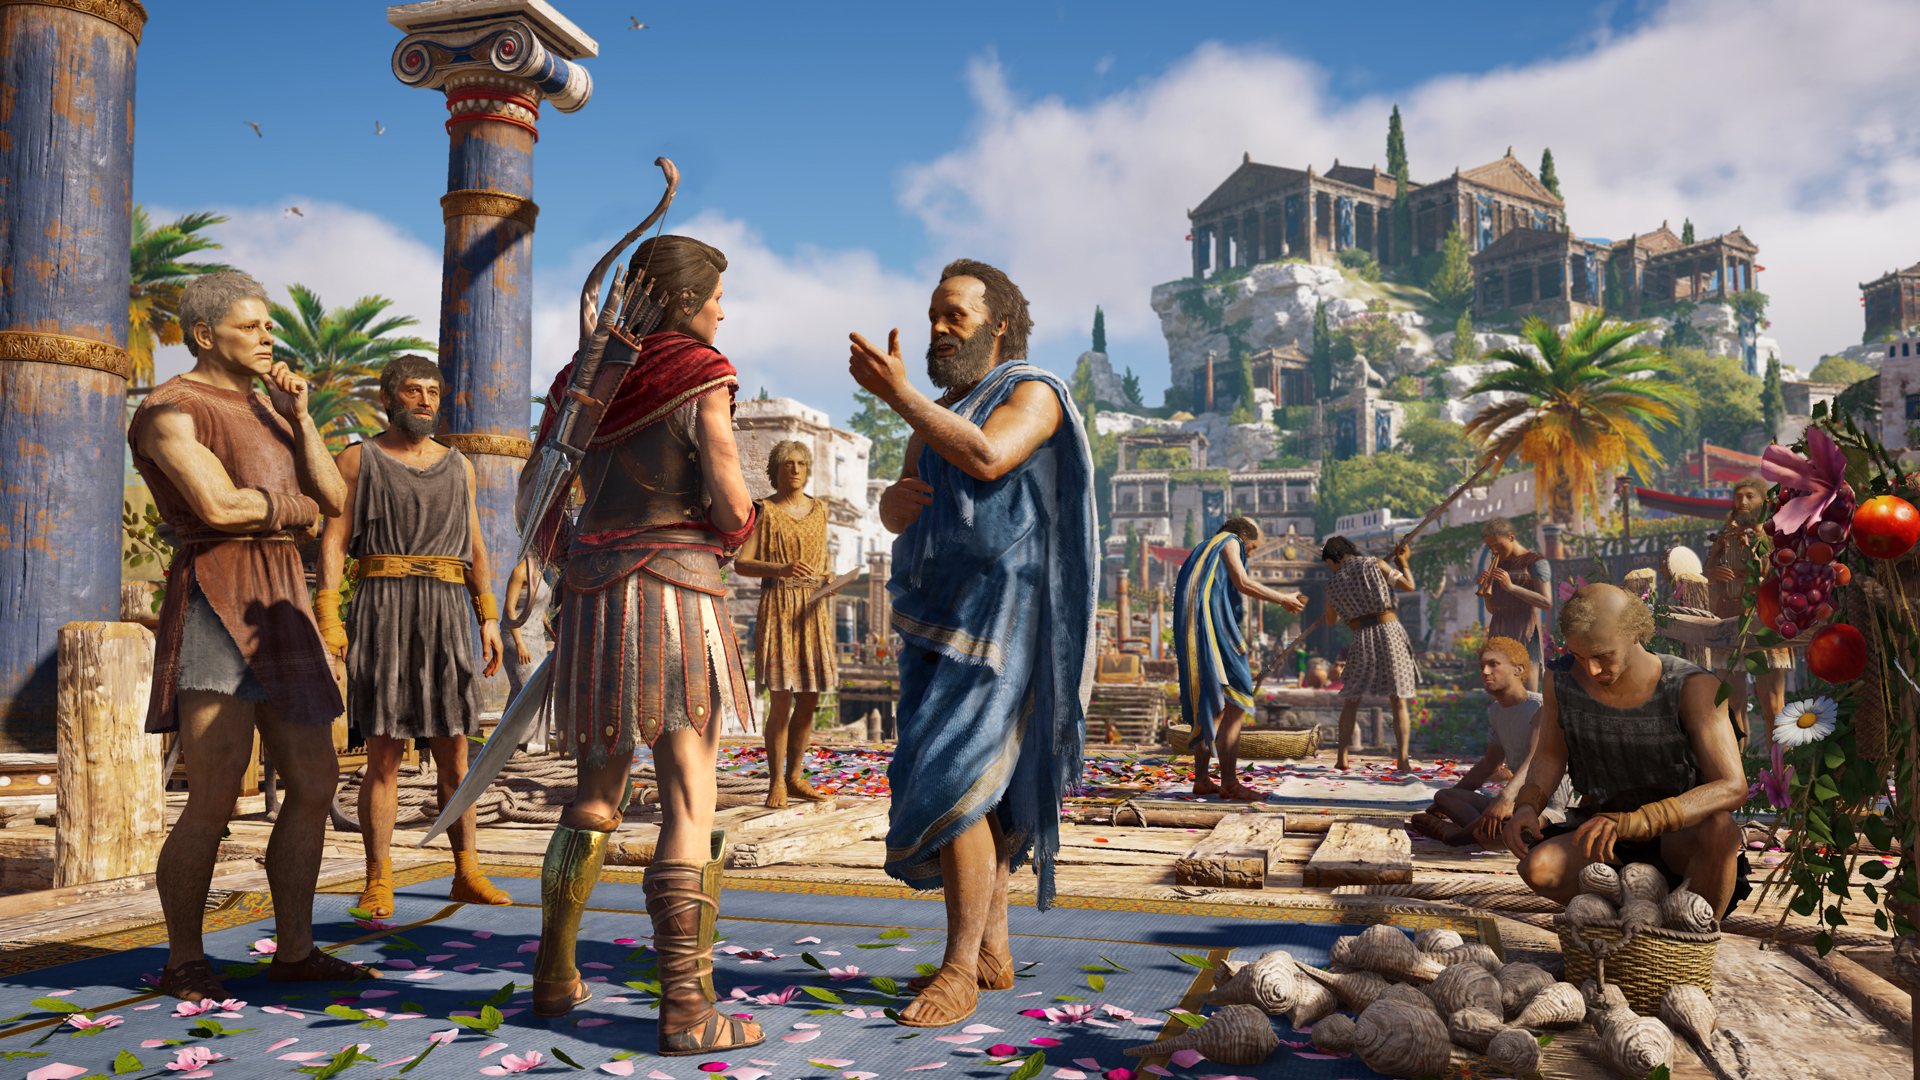 Assassin's Creed Odyssey - Ultimate (Ubisoft) (RUS|ENG|MULTi) [UplayRip] by vano_next